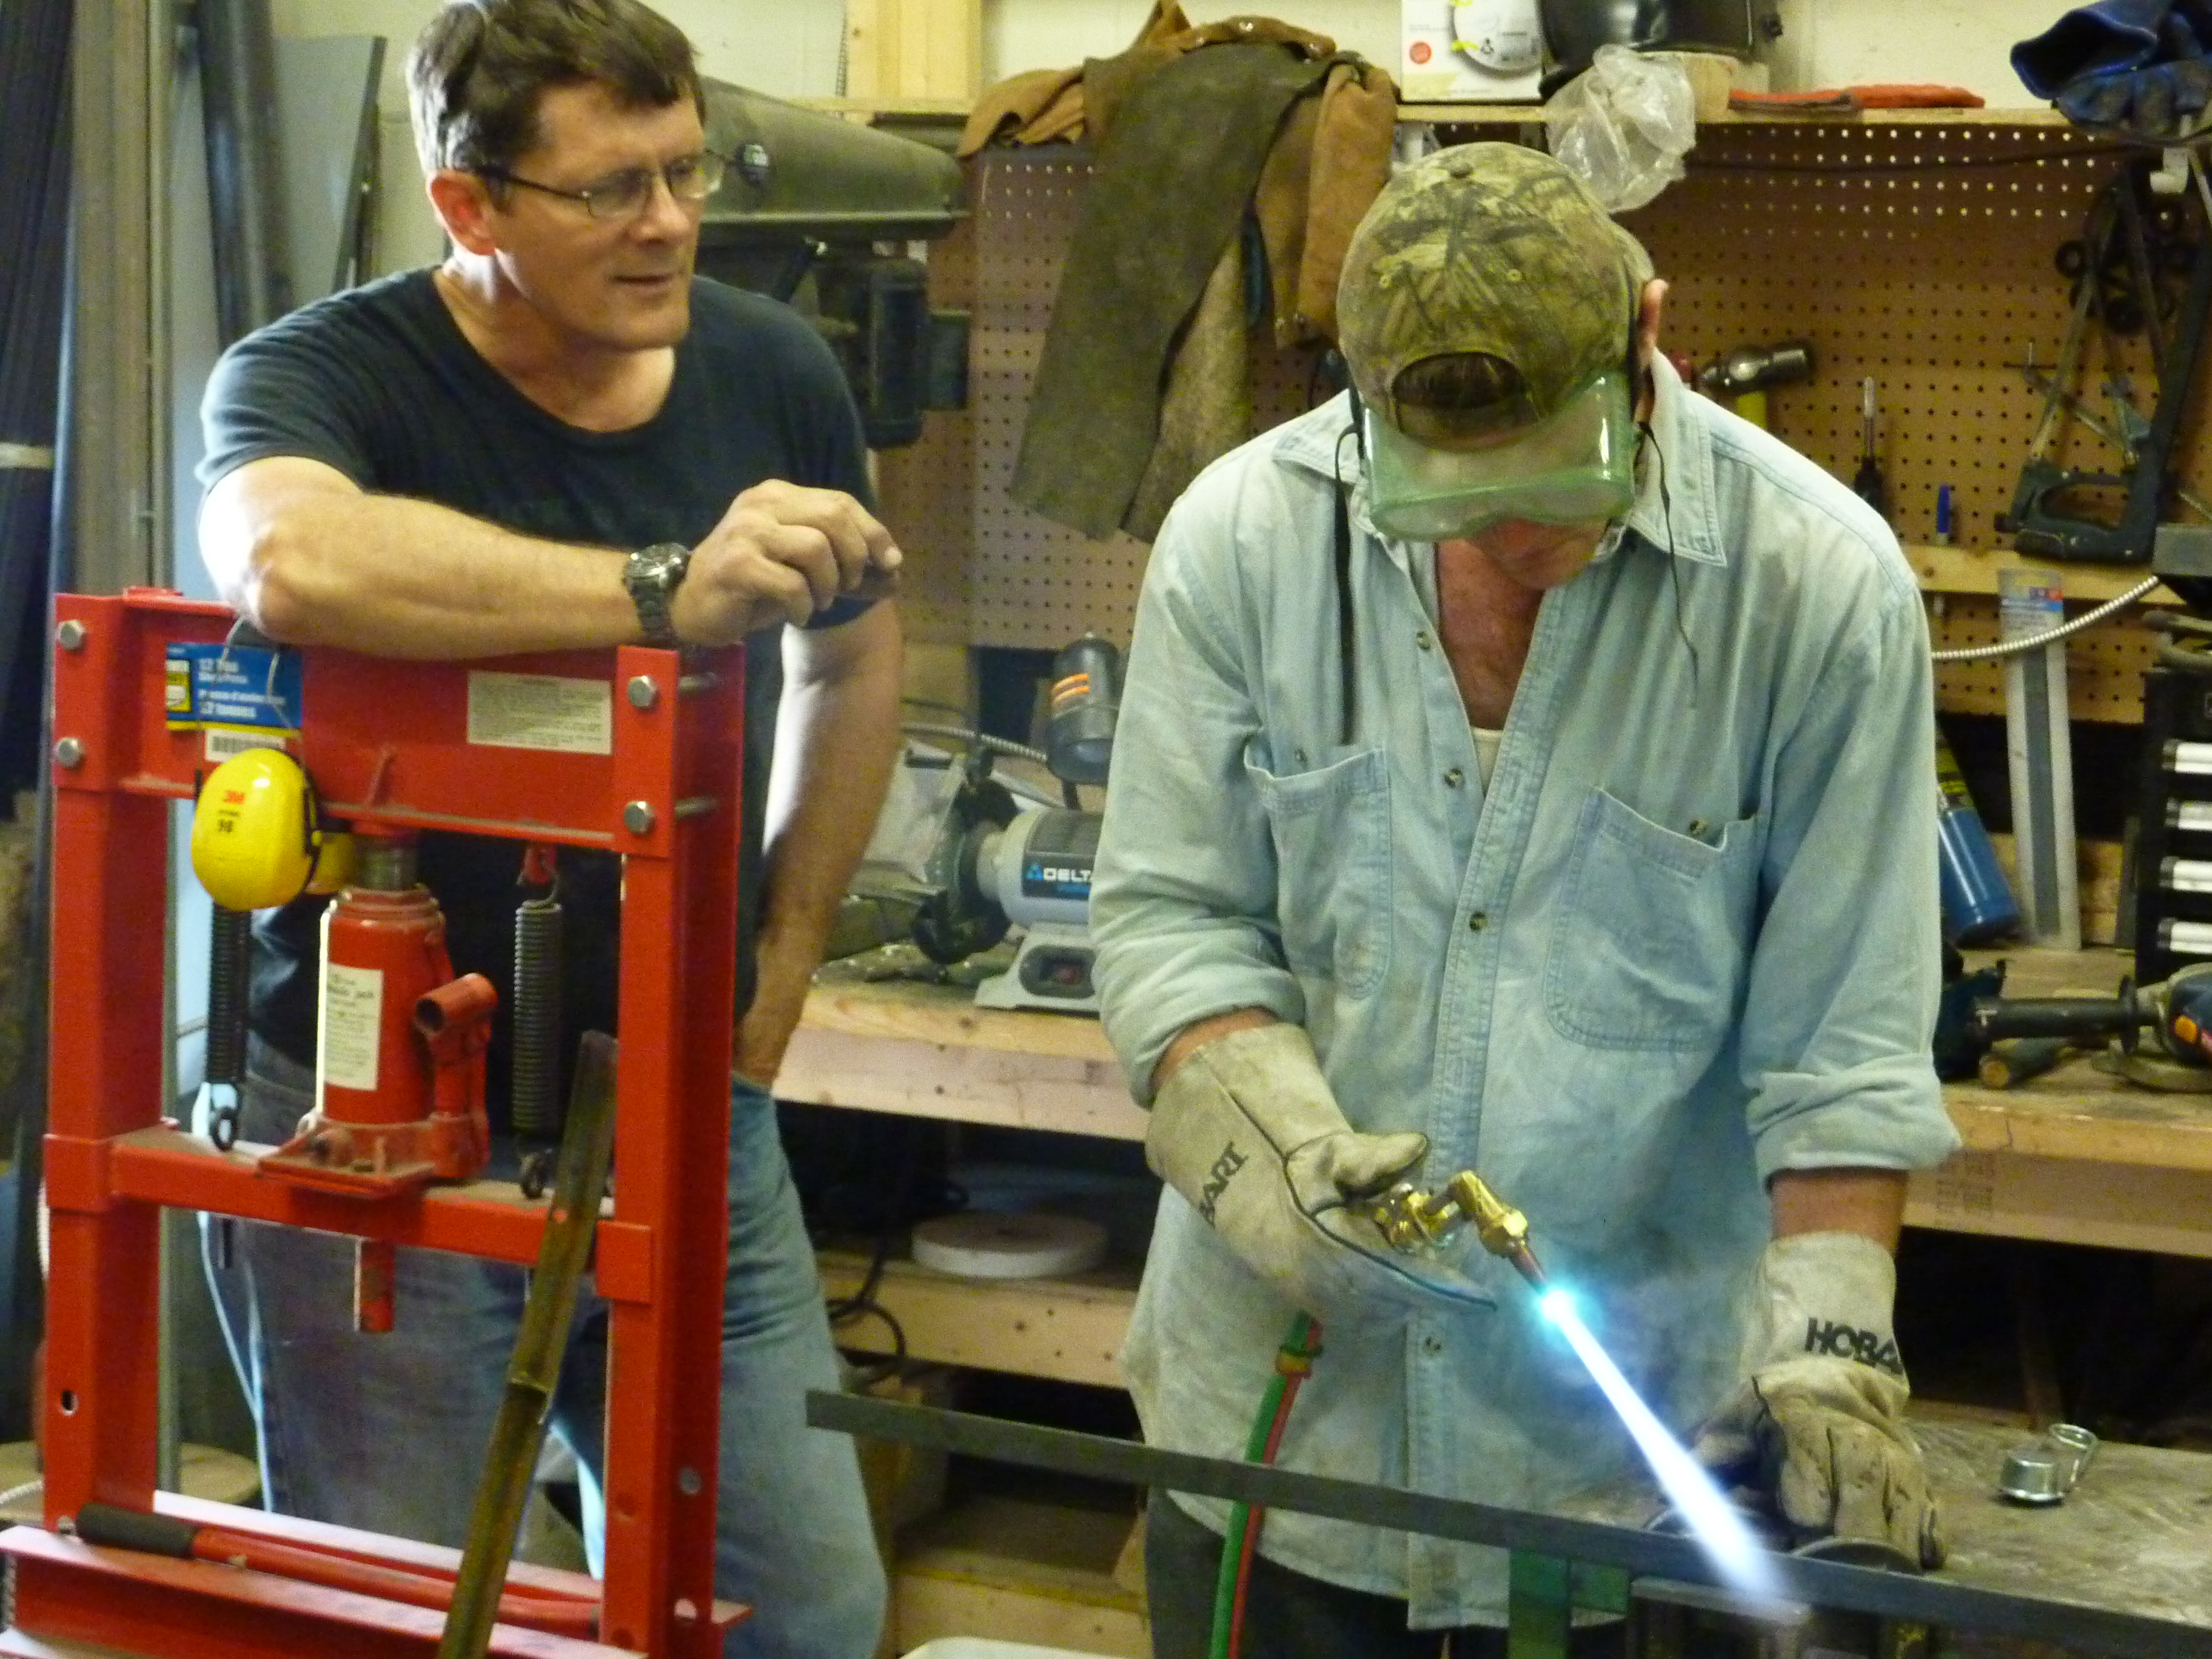 Workshop participants at Factor E Farm are given crash courses in such manufacturing skills as using a cutting torch. Photo: Open Source Ecology.